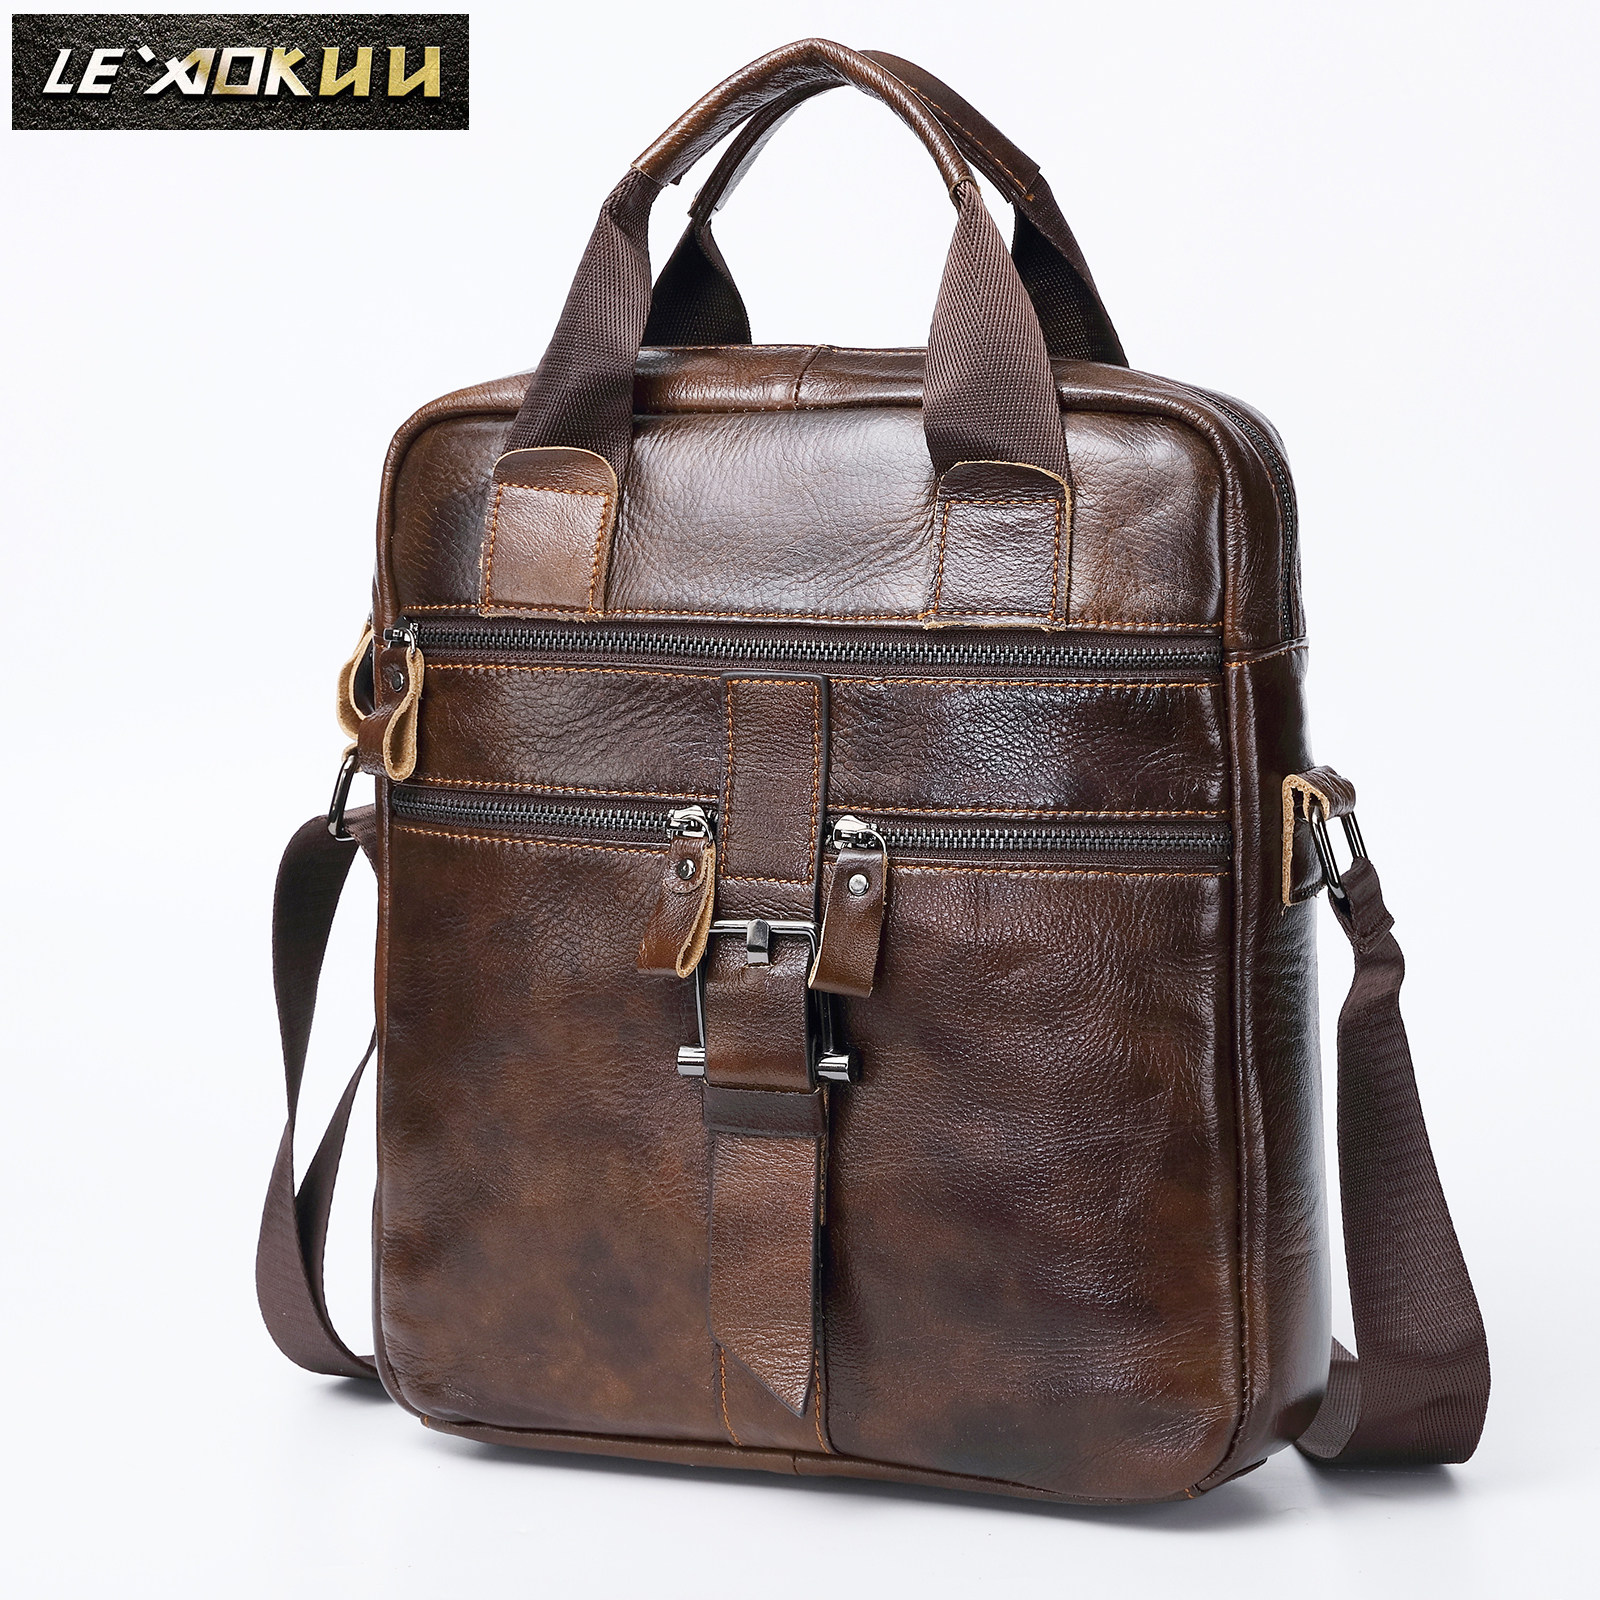 Quality Original Leather Male Casual Shoulder Messenger Bag Cowhide Fashion Cross-body Bag 9